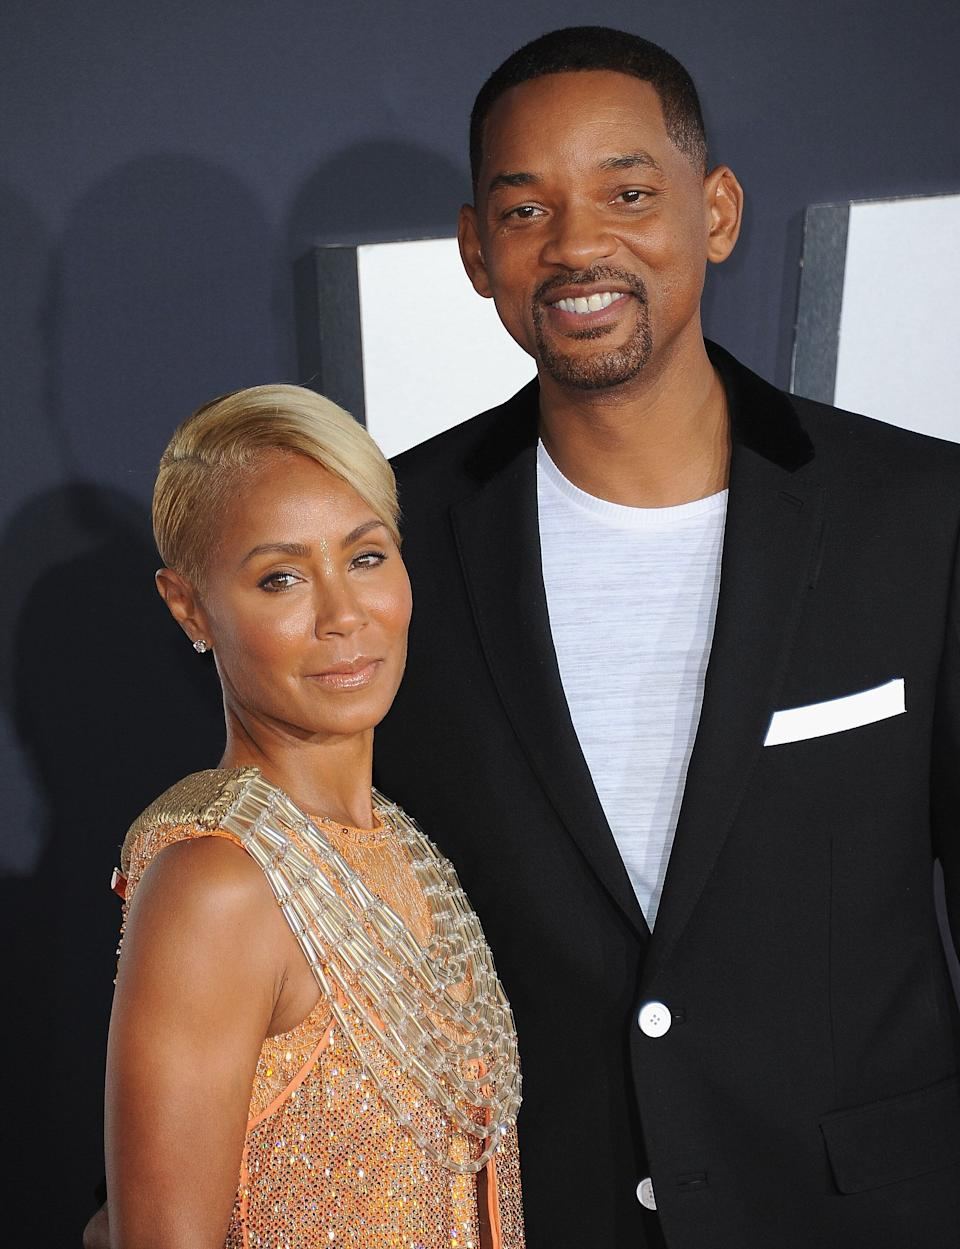 """Jada Pinkett Smith and Will Smith arrive at the premiere of """"Gemini Man"""" in 2019. (Photo: Albert L. Ortega via Getty Images)"""